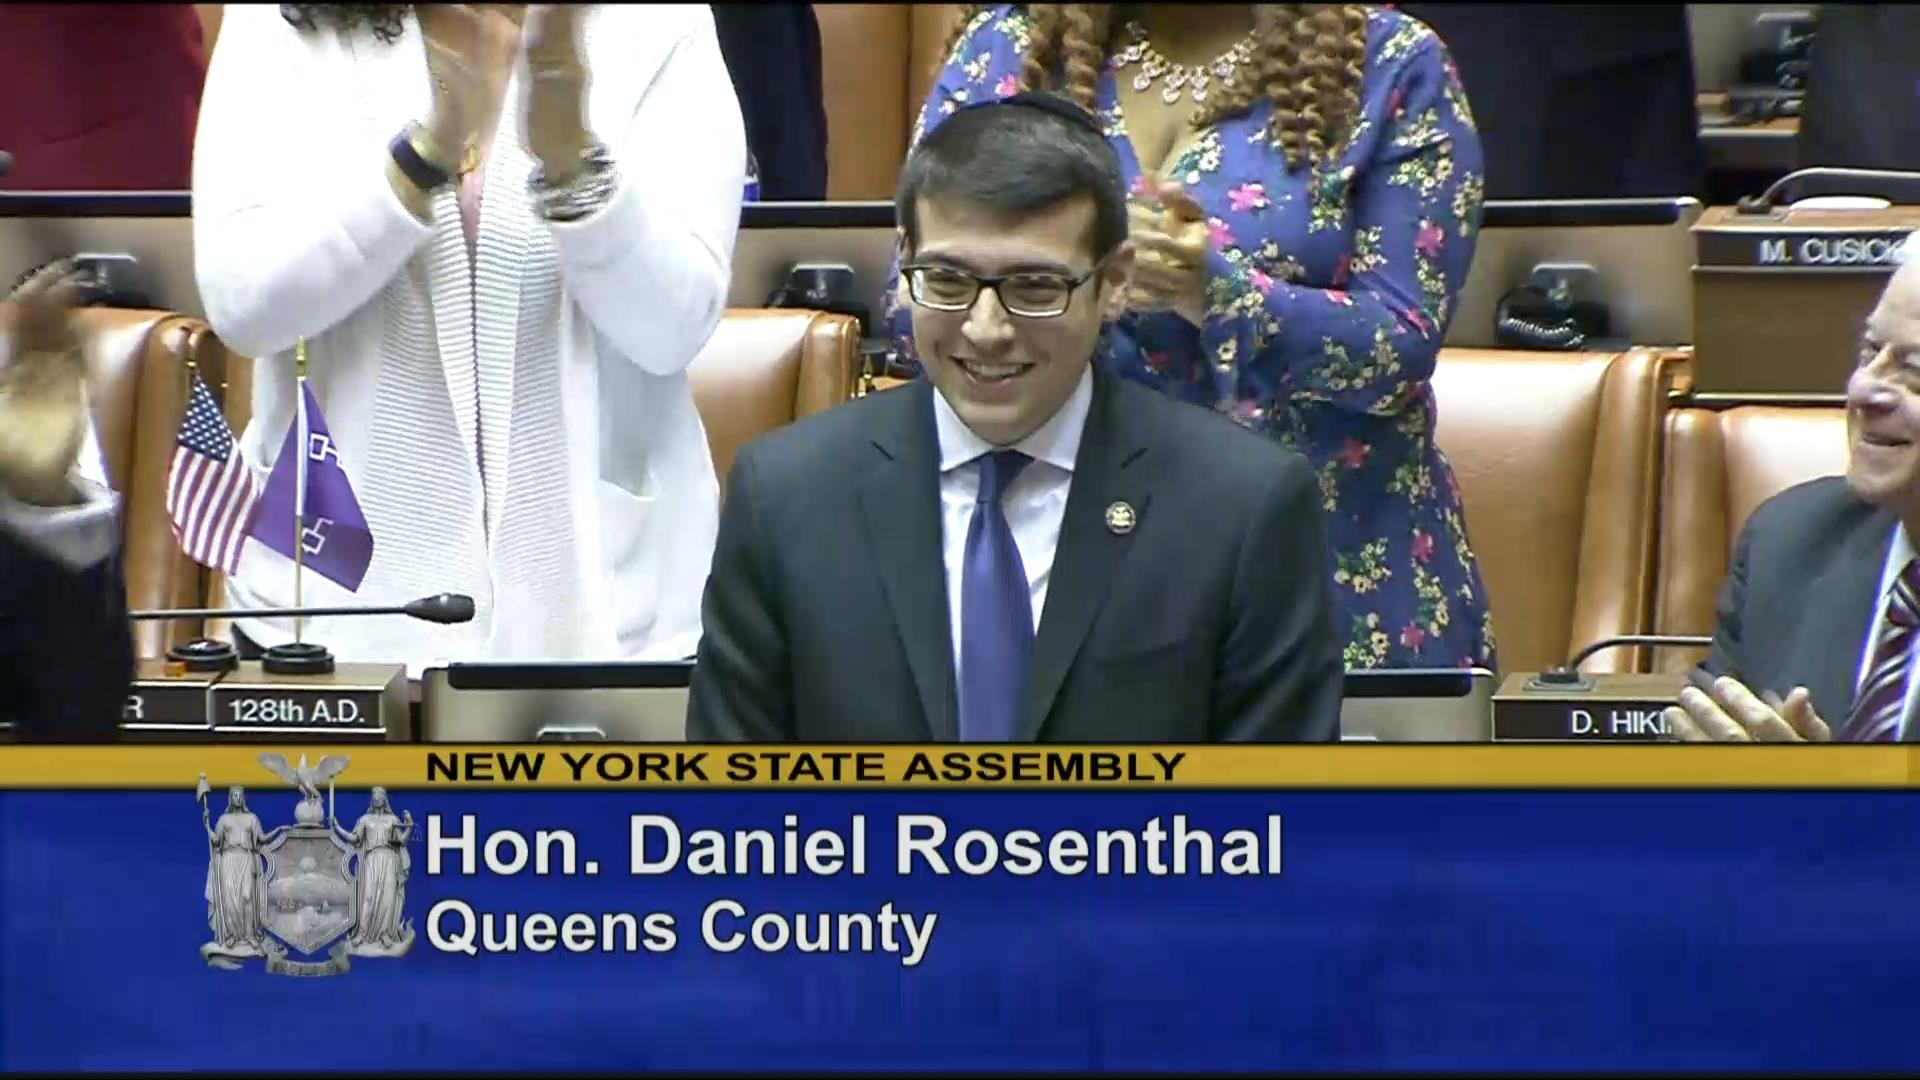 Introduction of Assemblymember Daniel Rosenthal